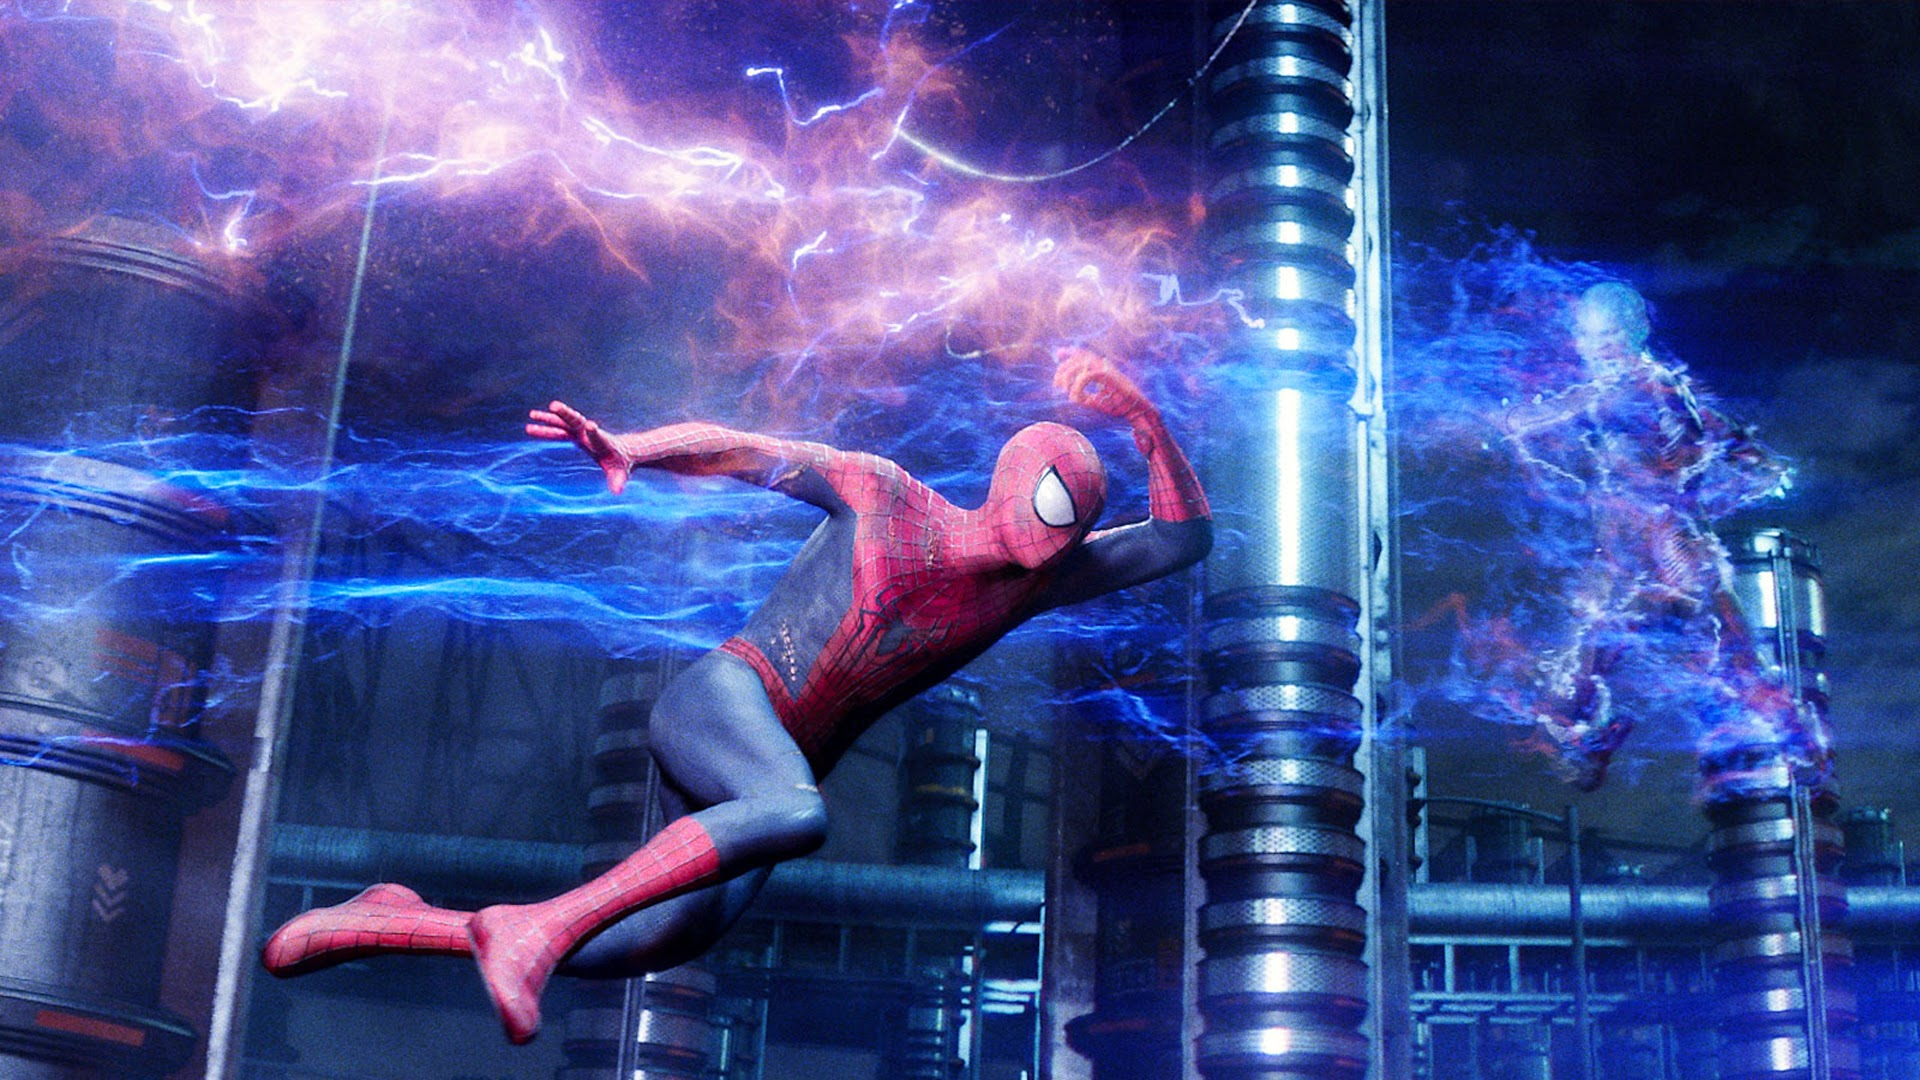 the amazing spider man 2 2014 movie spider man vs electro hd wallpaper